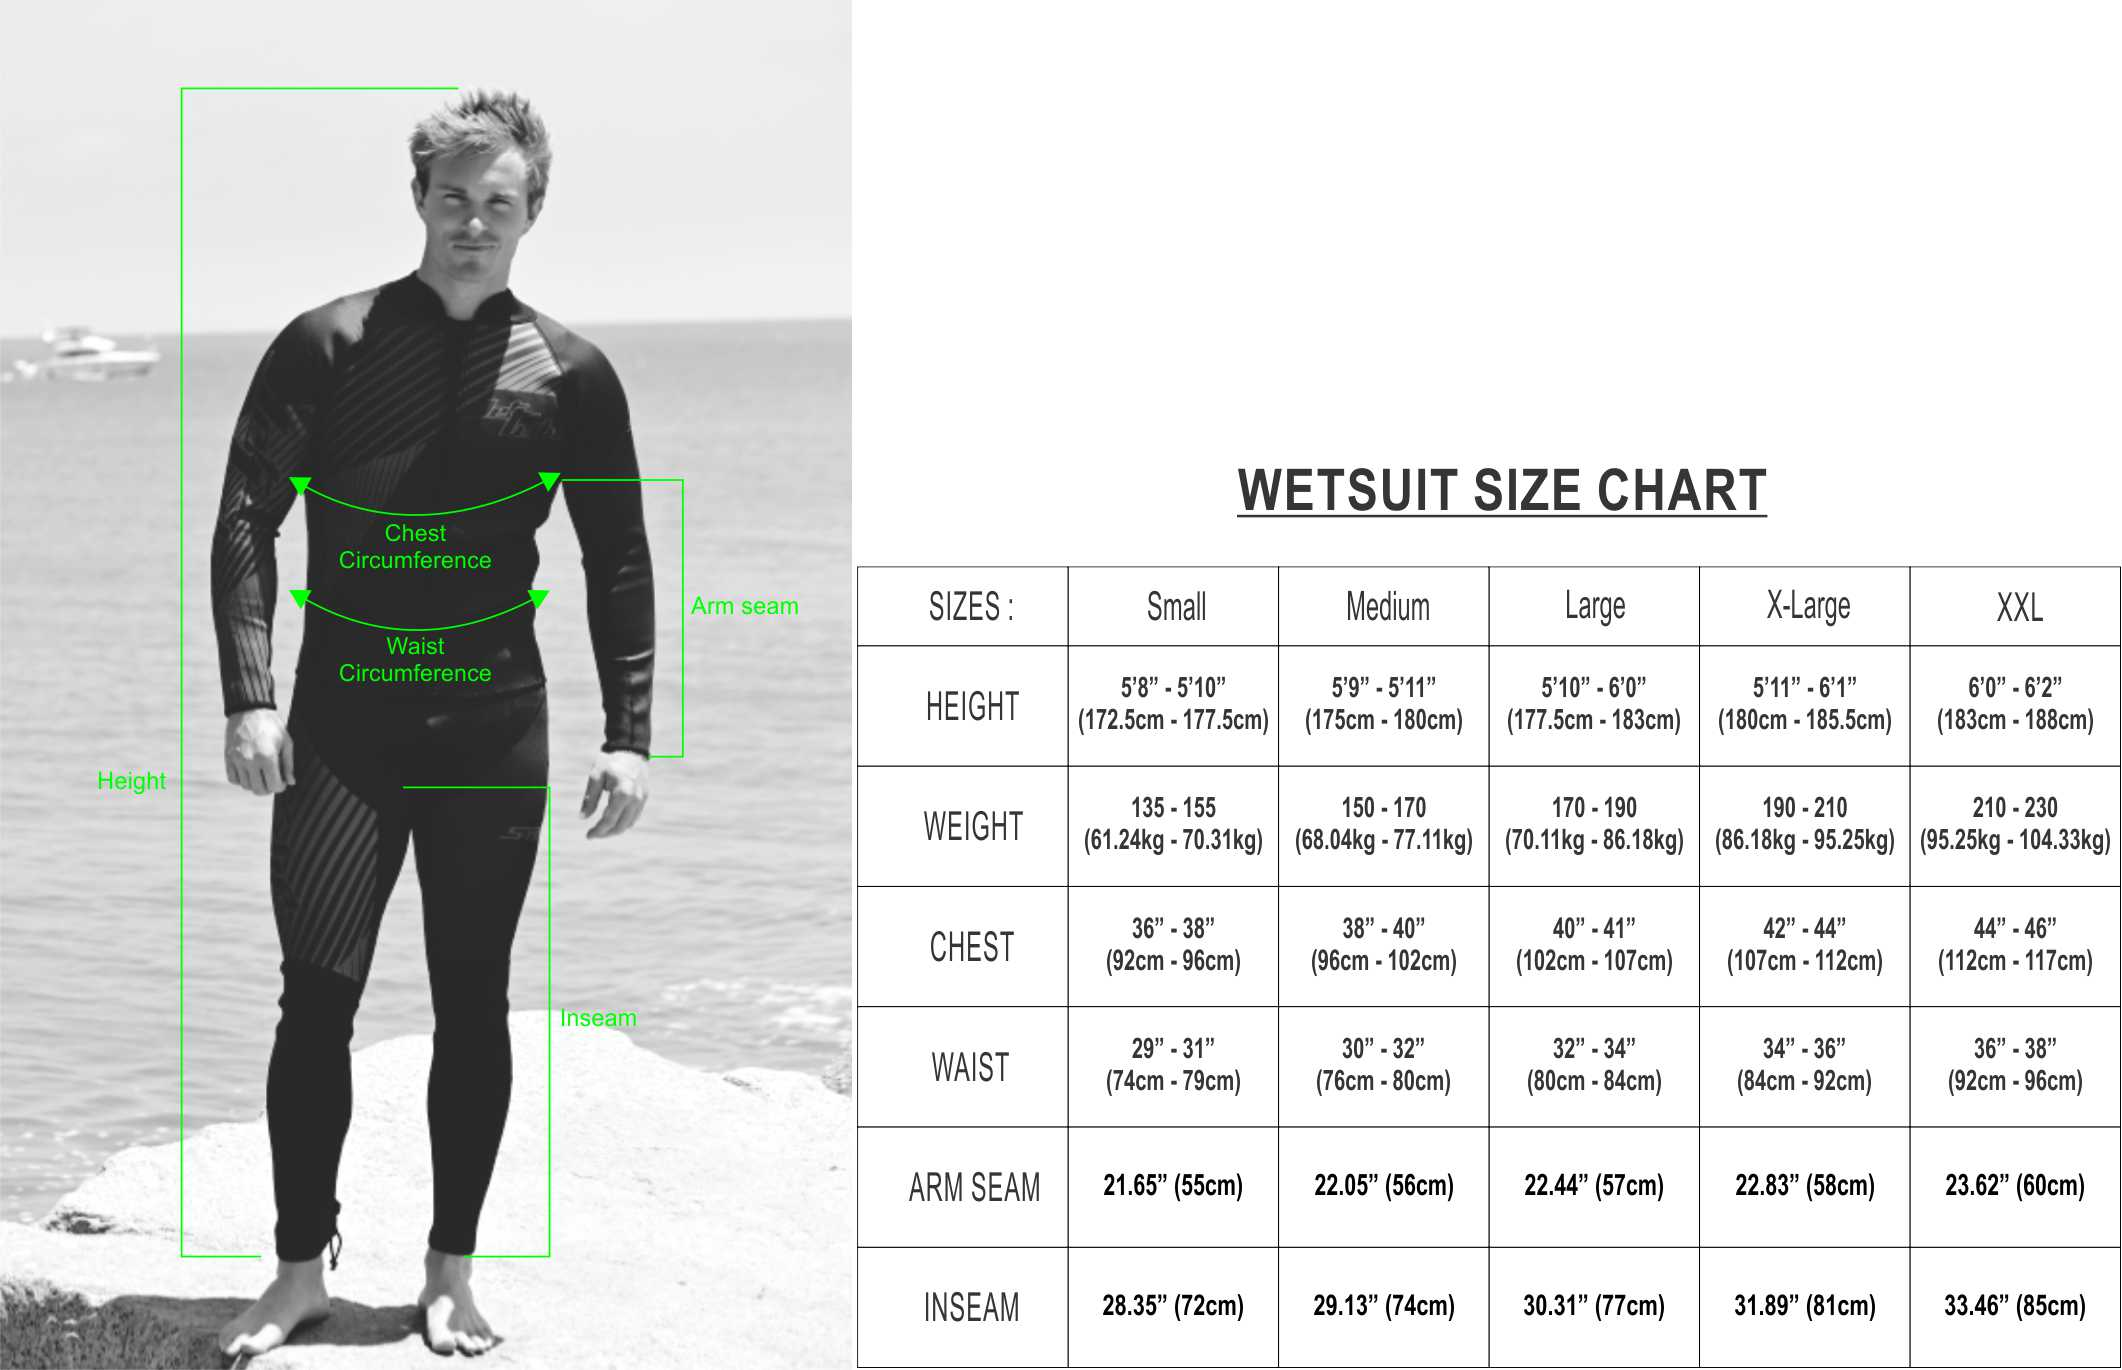 Wetsuit Size Chart